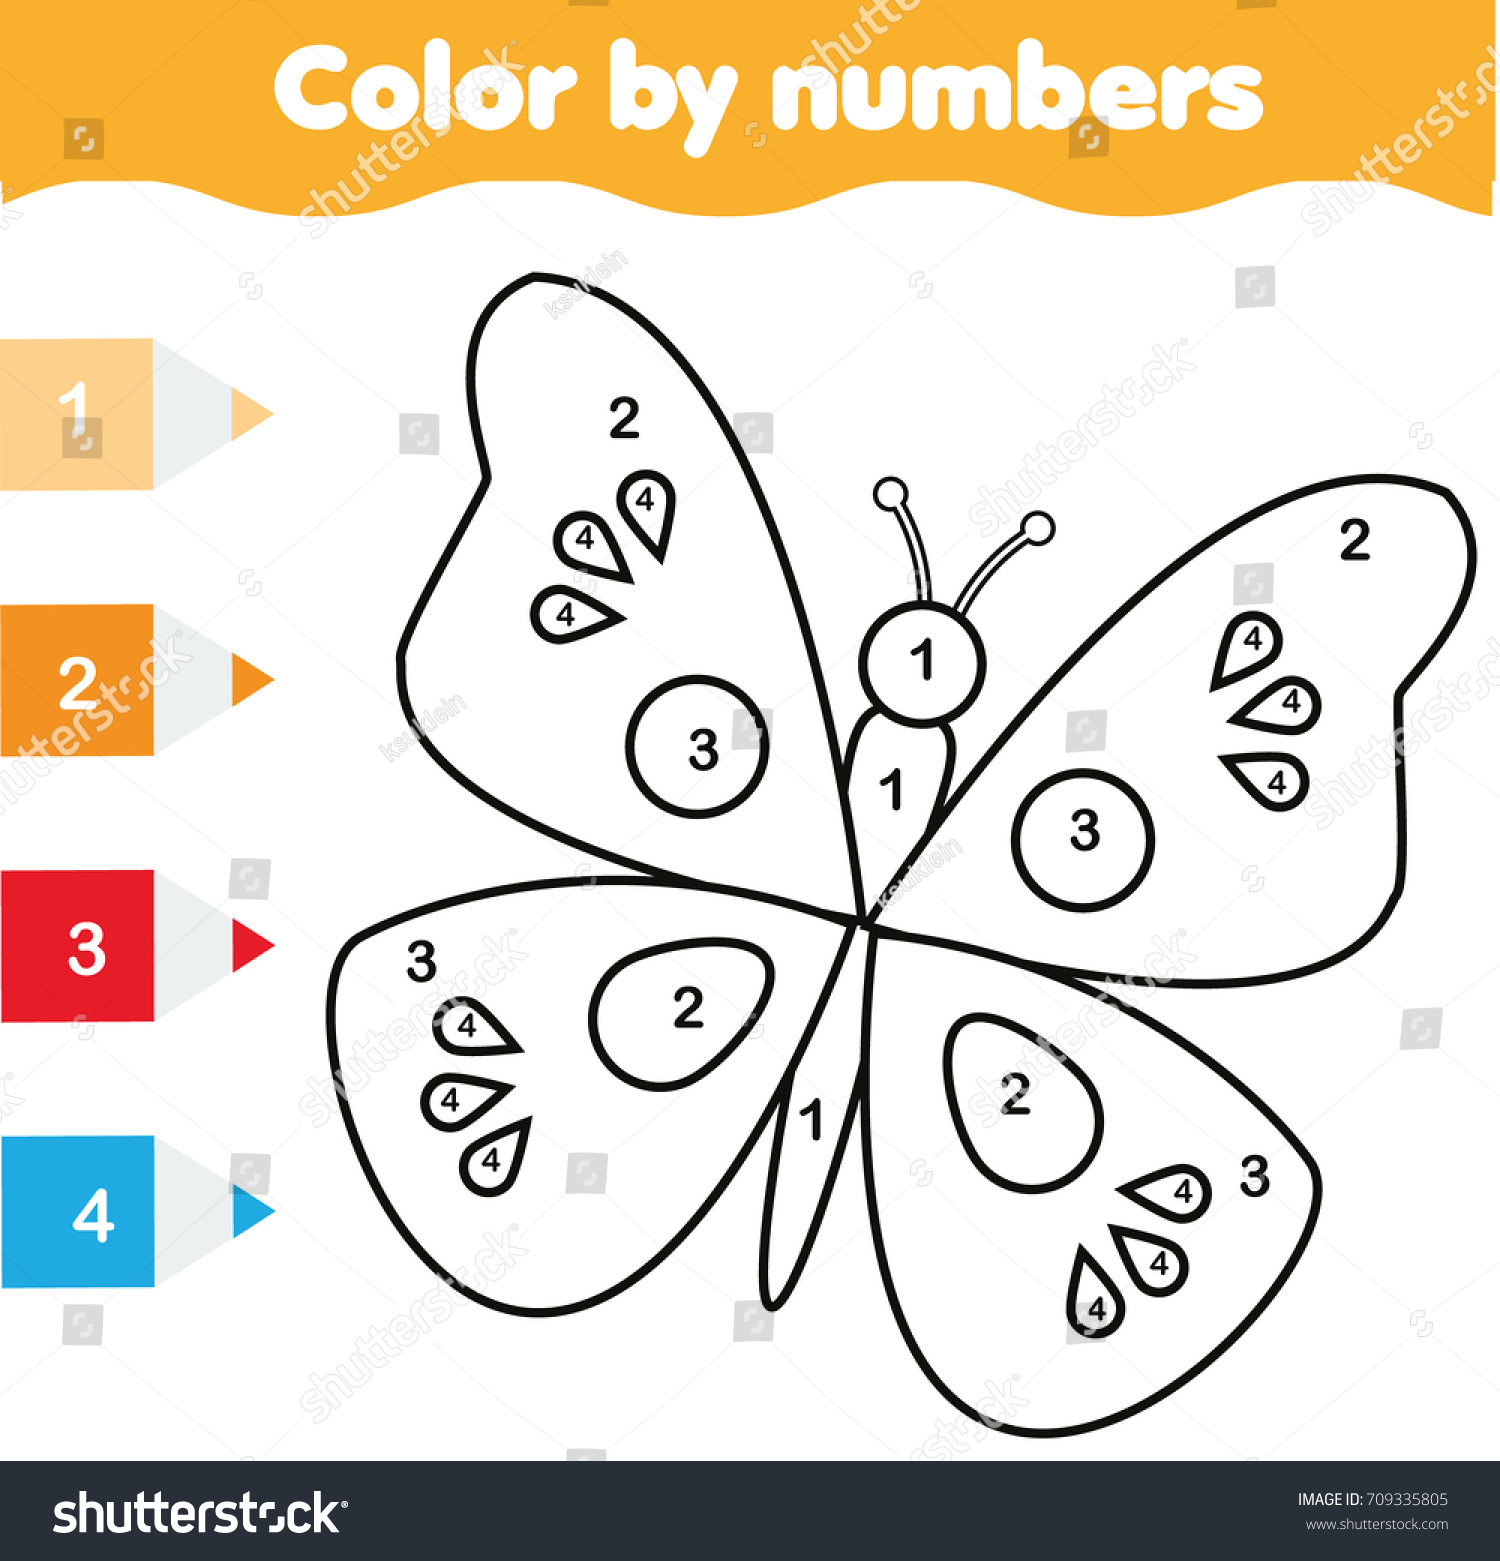 color by numbers educational children game drawing kids activity